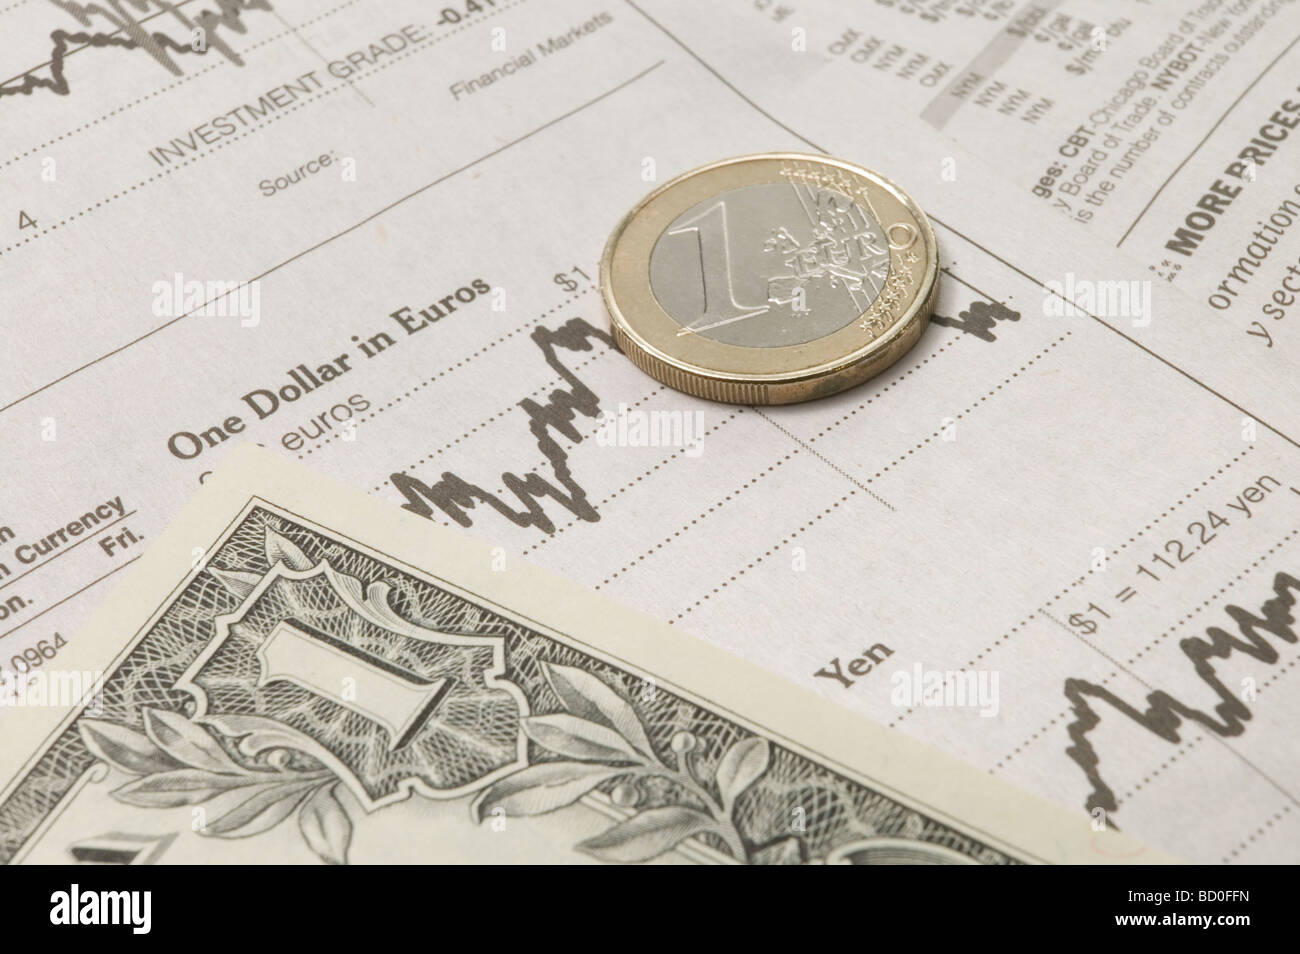 Coin Value Stock Photos & Coin Value Stock Images - Alamy